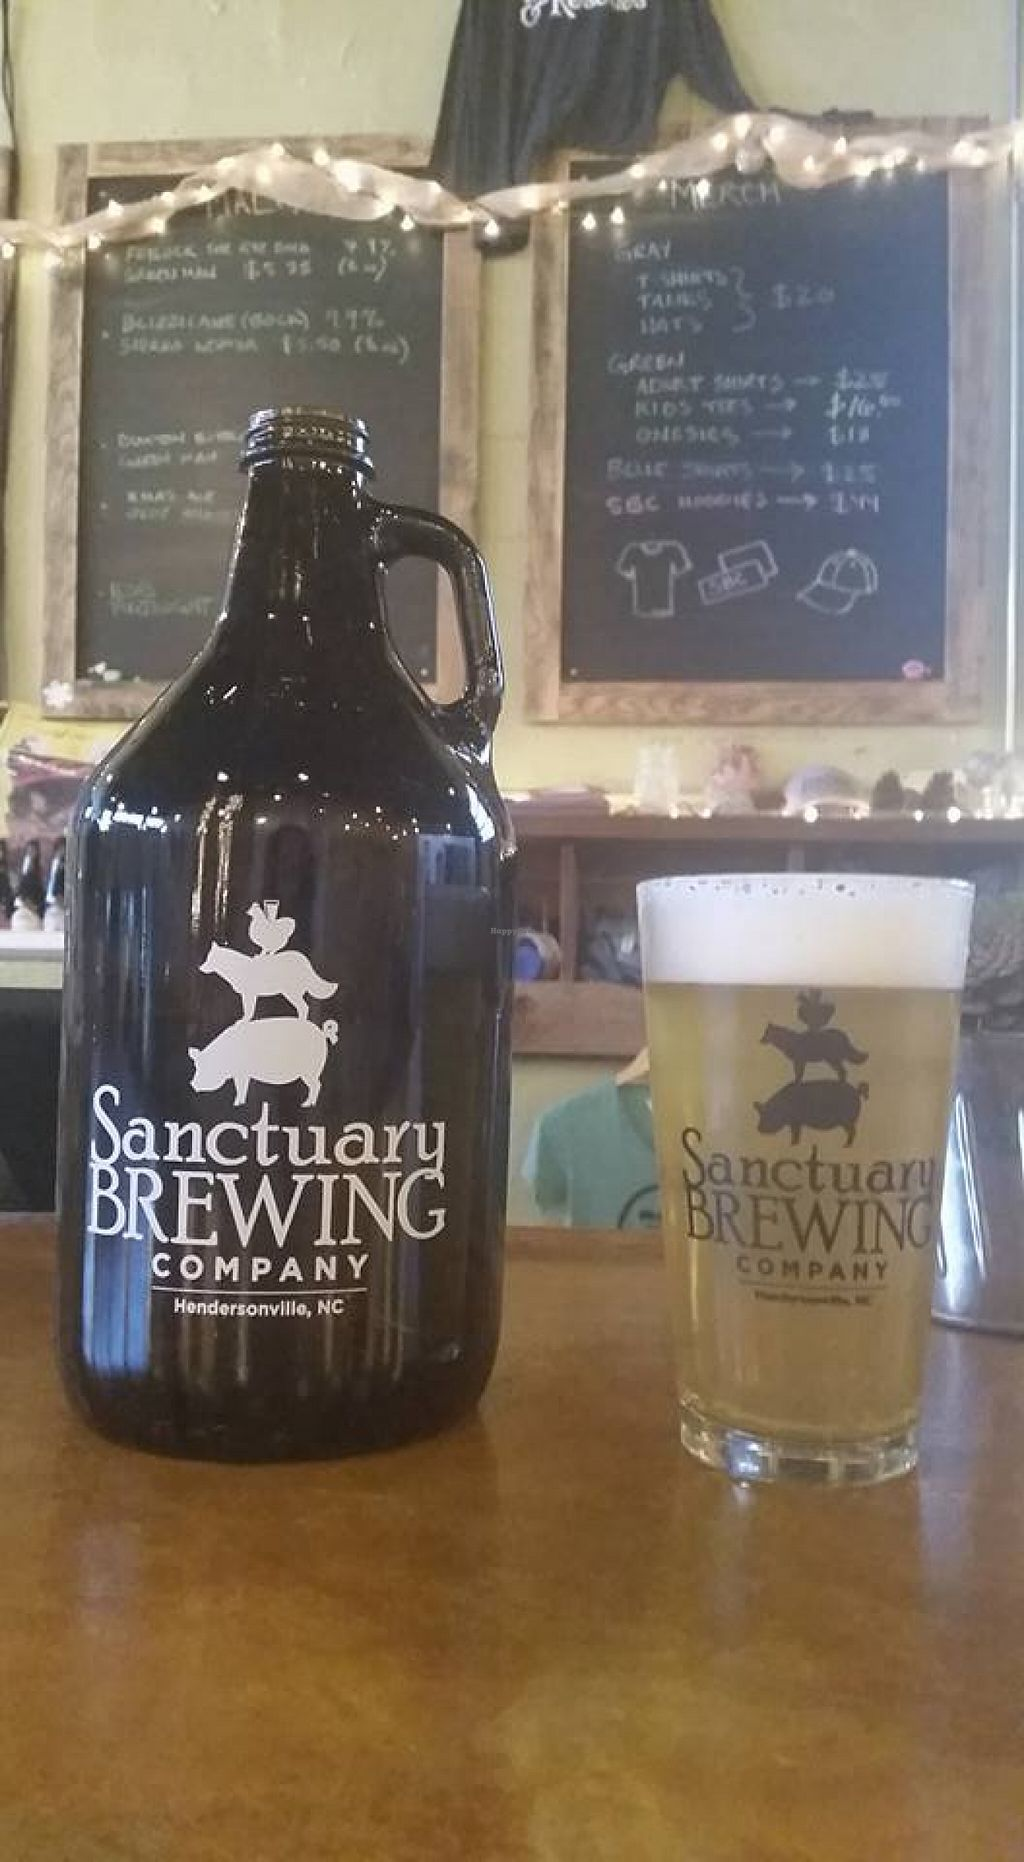 "Photo of Sanctuary Brewing Company  by <a href=""/members/profile/community"">community</a> <br/>Sanctuary Brewing Company <br/> February 9, 2016  - <a href='/contact/abuse/image/69447/135591'>Report</a>"